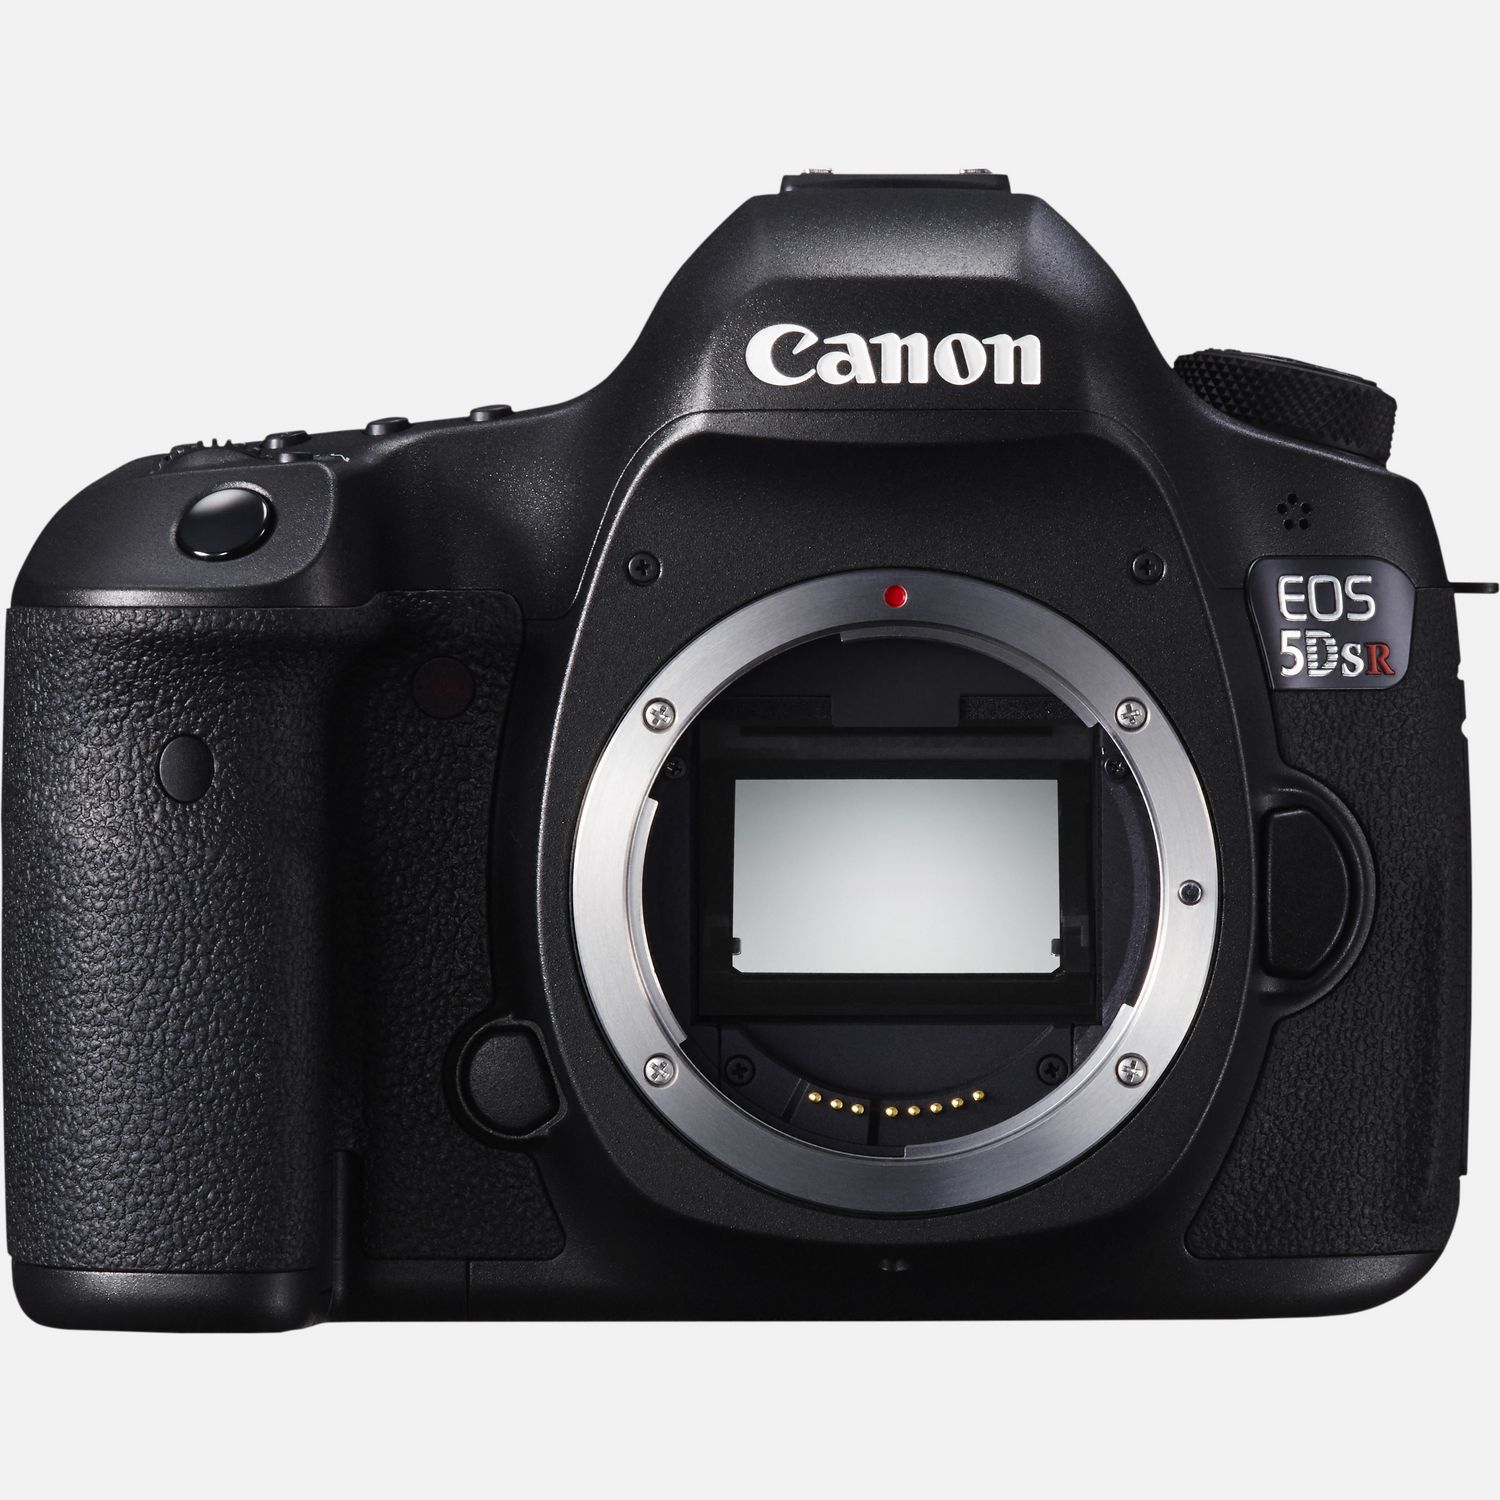 Buy Canon Eos 5ds R Body In Low Light Cameras Ireland Store 3wrgb Led Driver Ver11 With Cmos Youtube